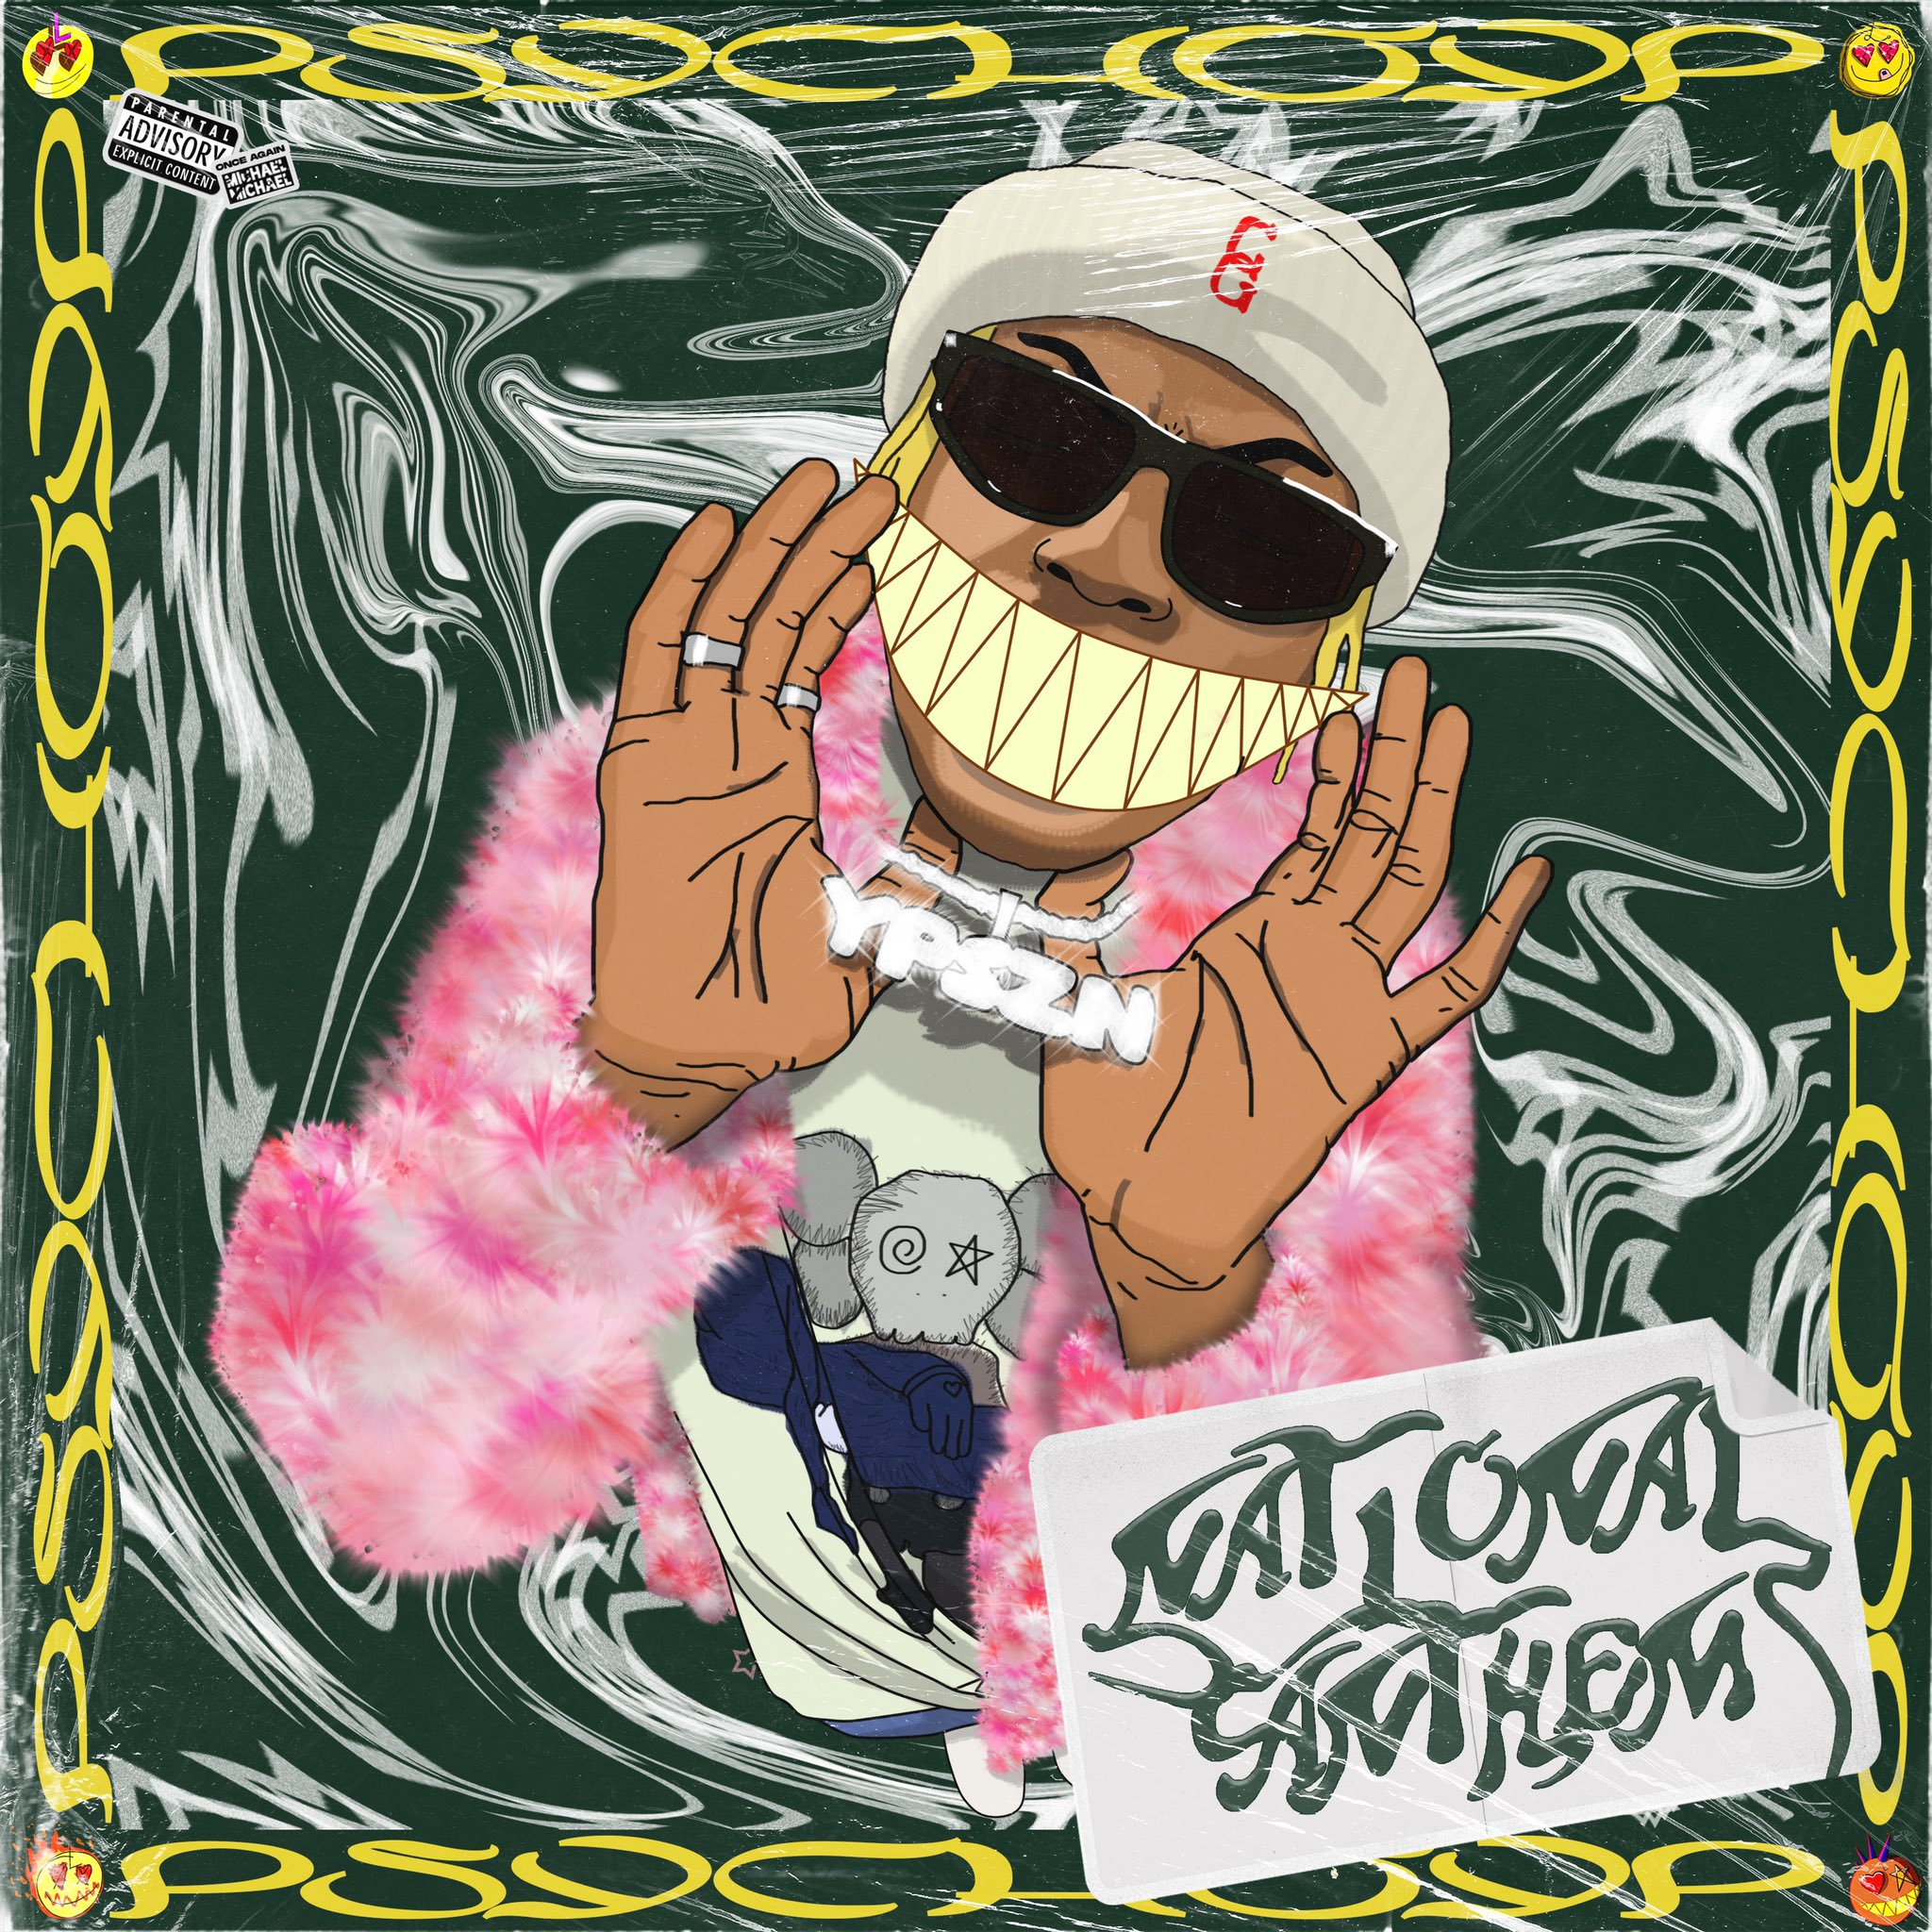 PsychoYP is back with jams in 'National Anthem'